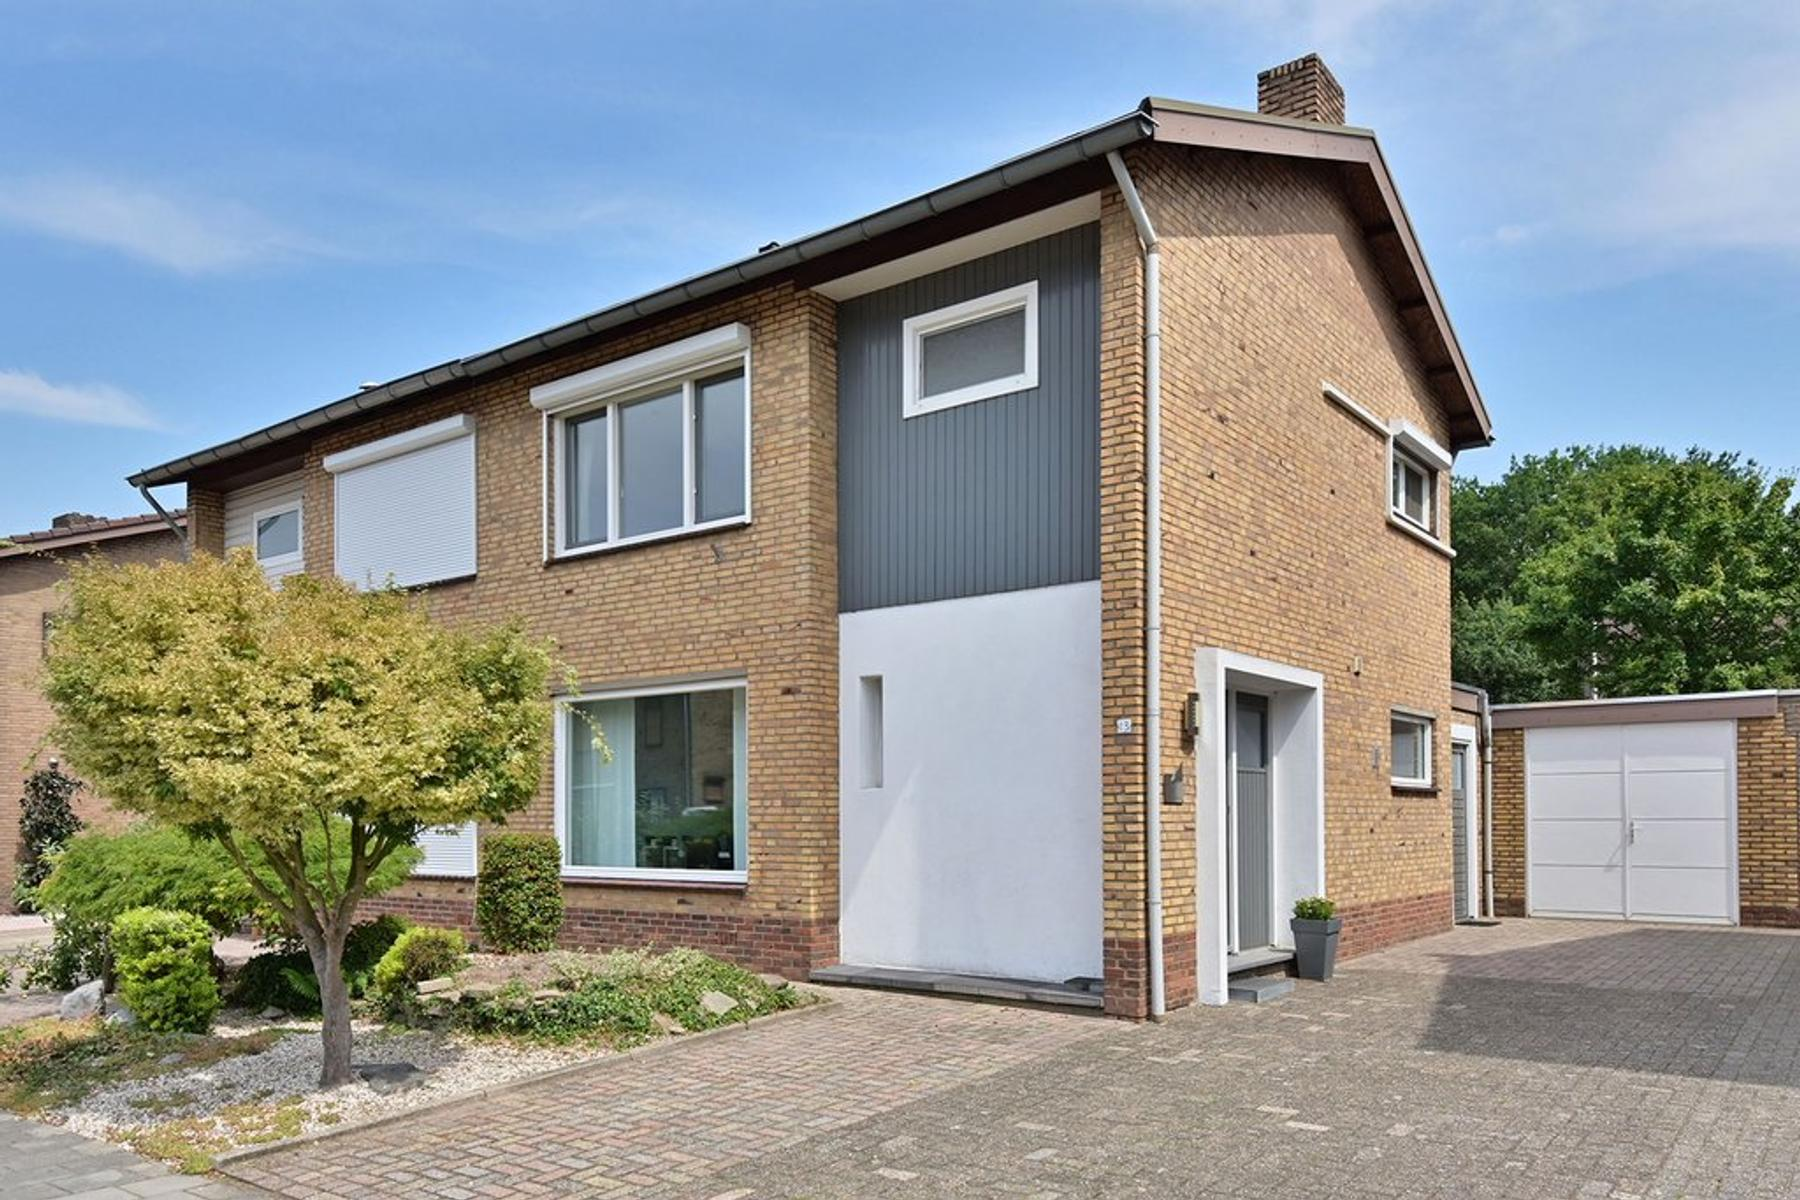 Martensweg 13 in Holtum 6123 AX